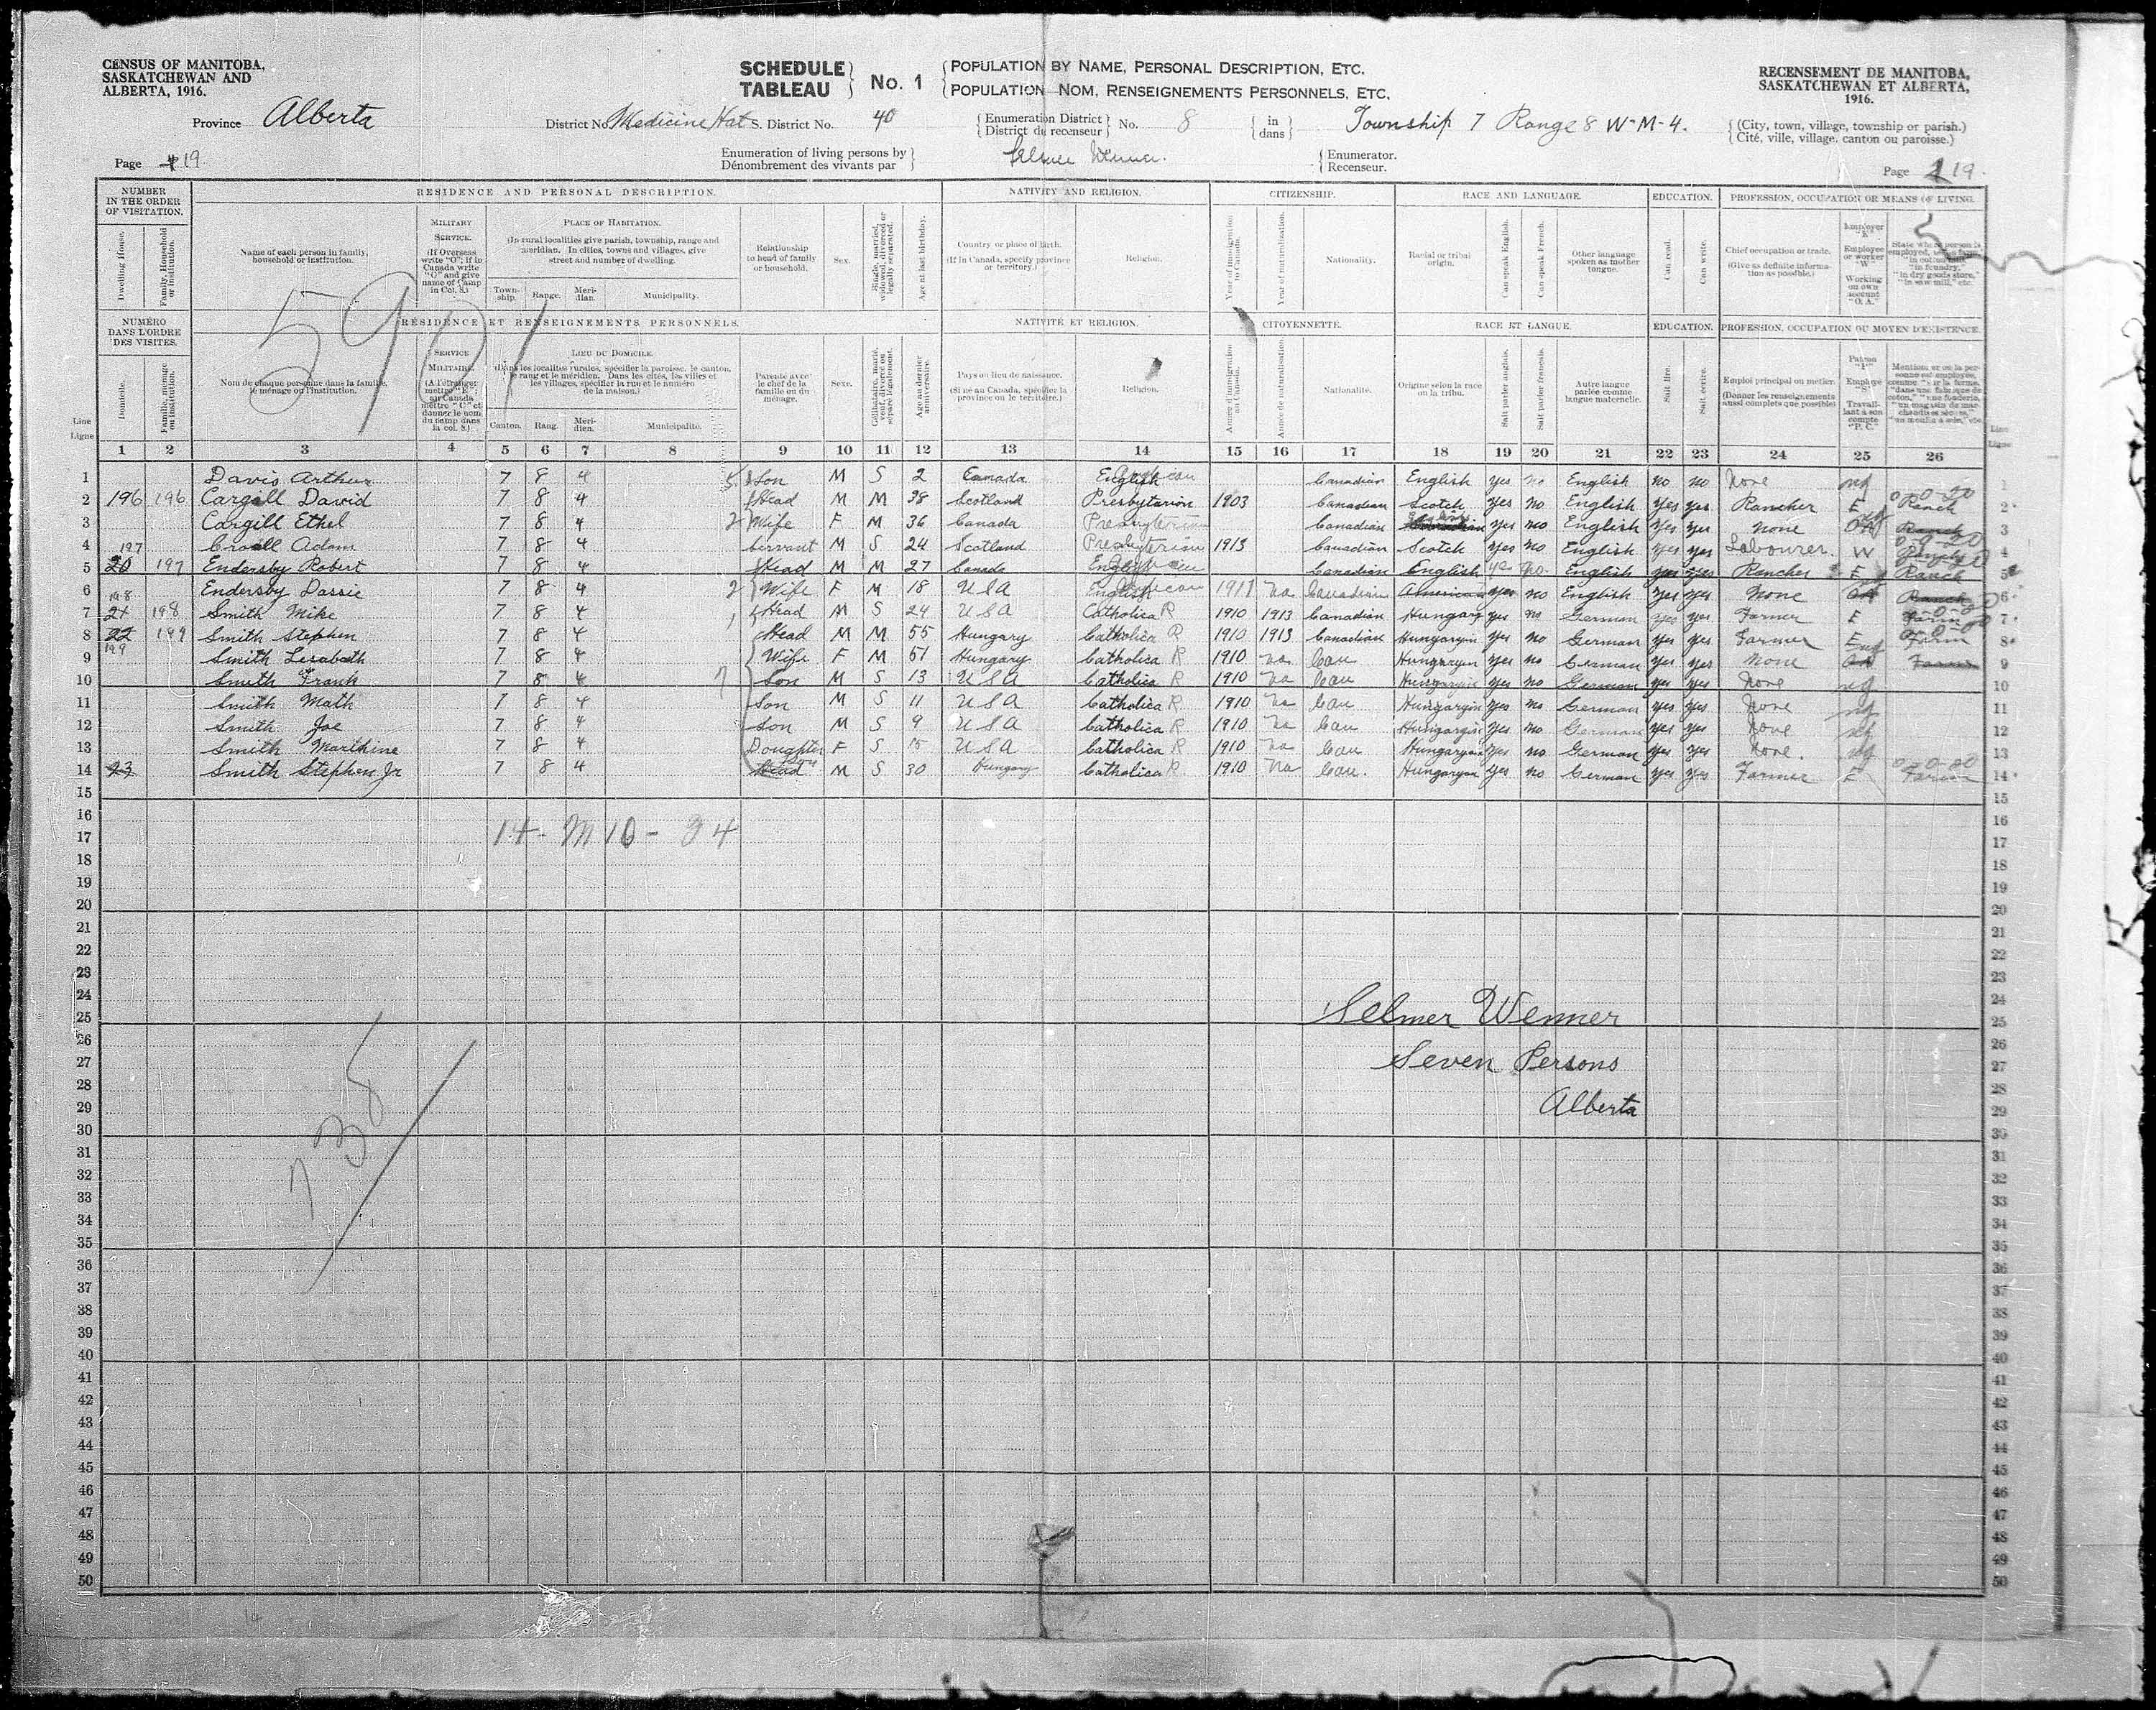 Title: Census of the Prairie Provinces, 1916 - Mikan Number: 3800575 - Microform: t-21952